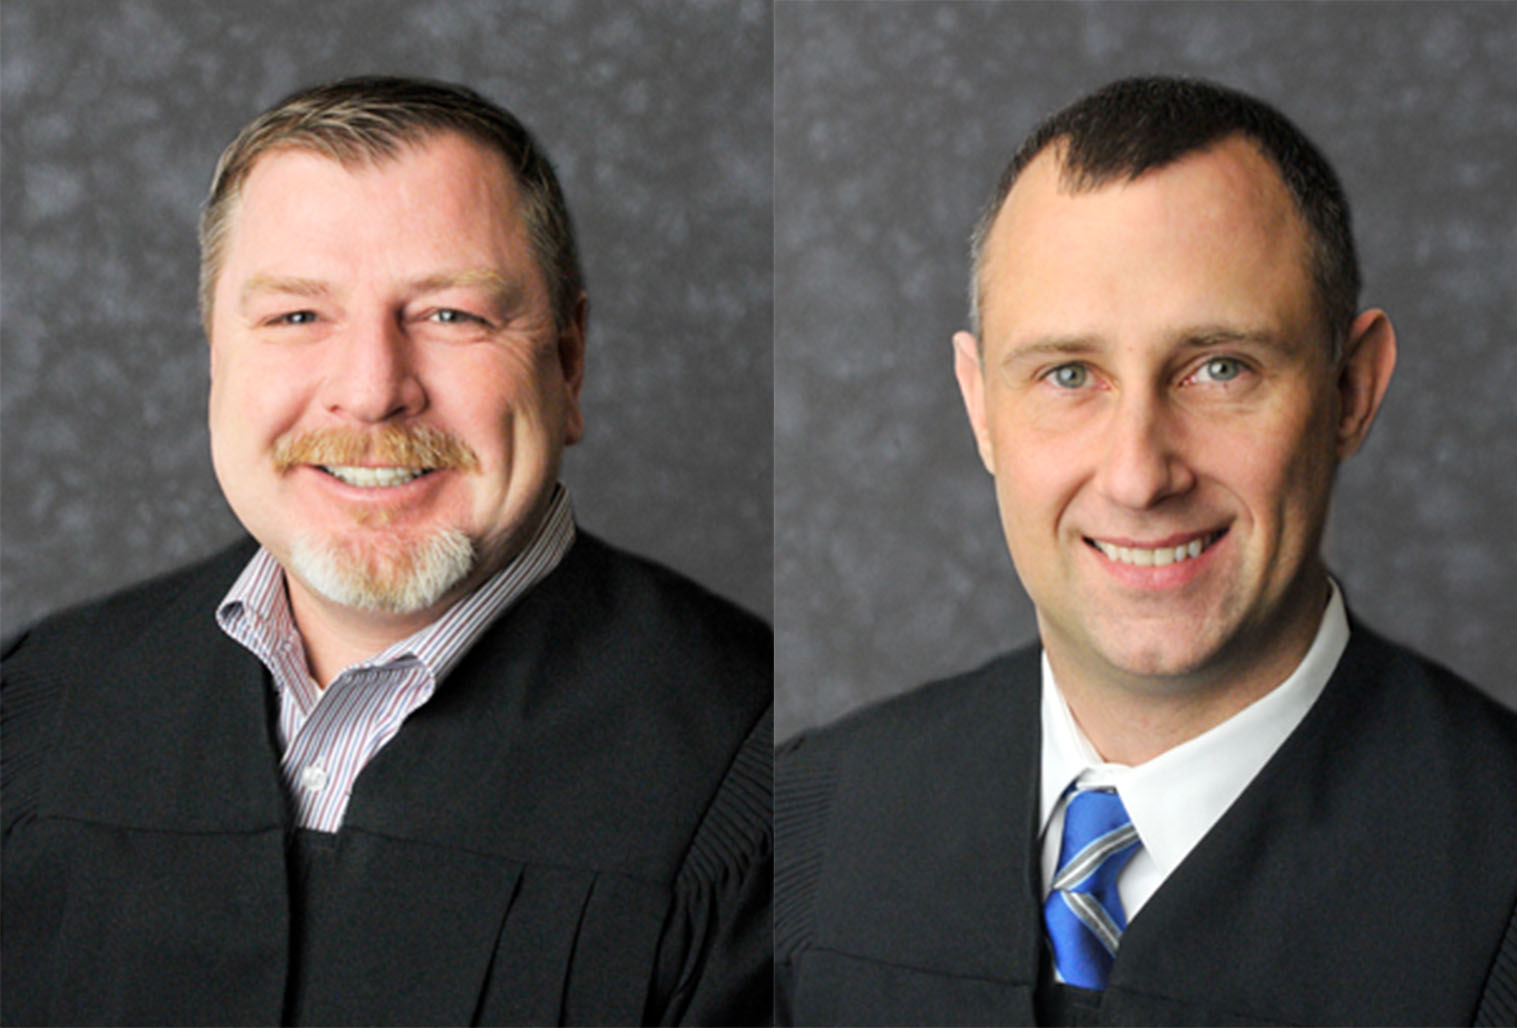 Judges Adams and Jacobs